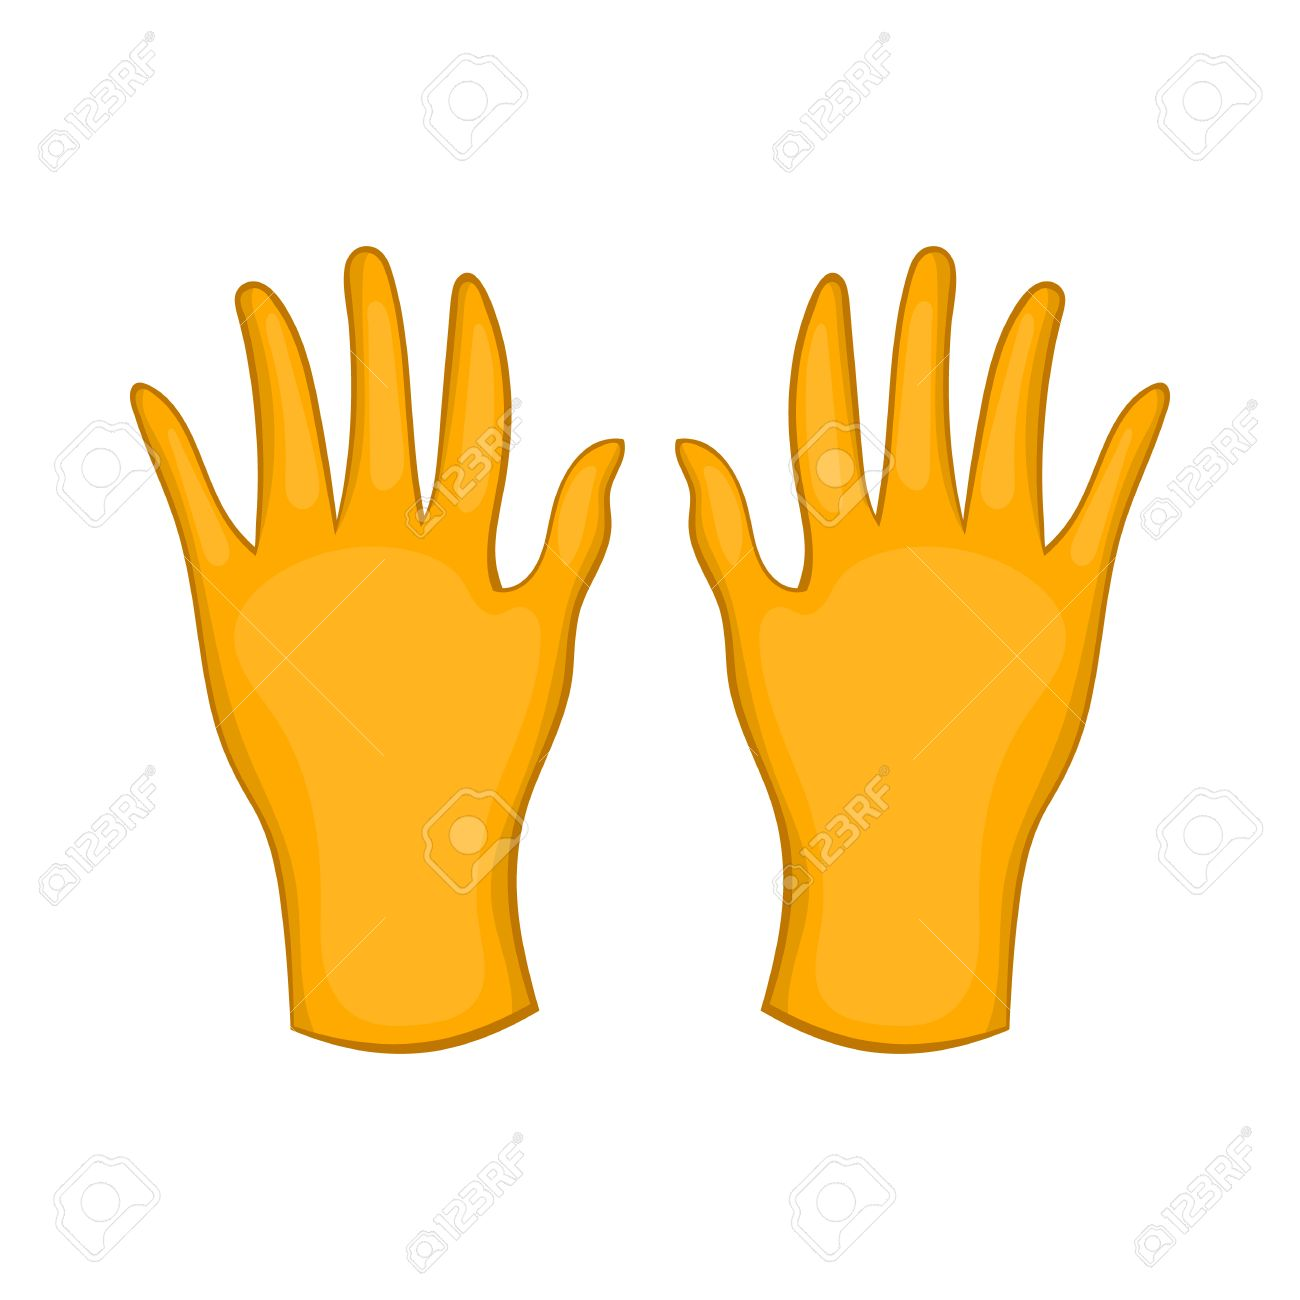 Rubber gloves icon in cartoon style isolated on white background rubber gloves icon in cartoon style isolated on white background hand protection symbol stock vector biocorpaavc